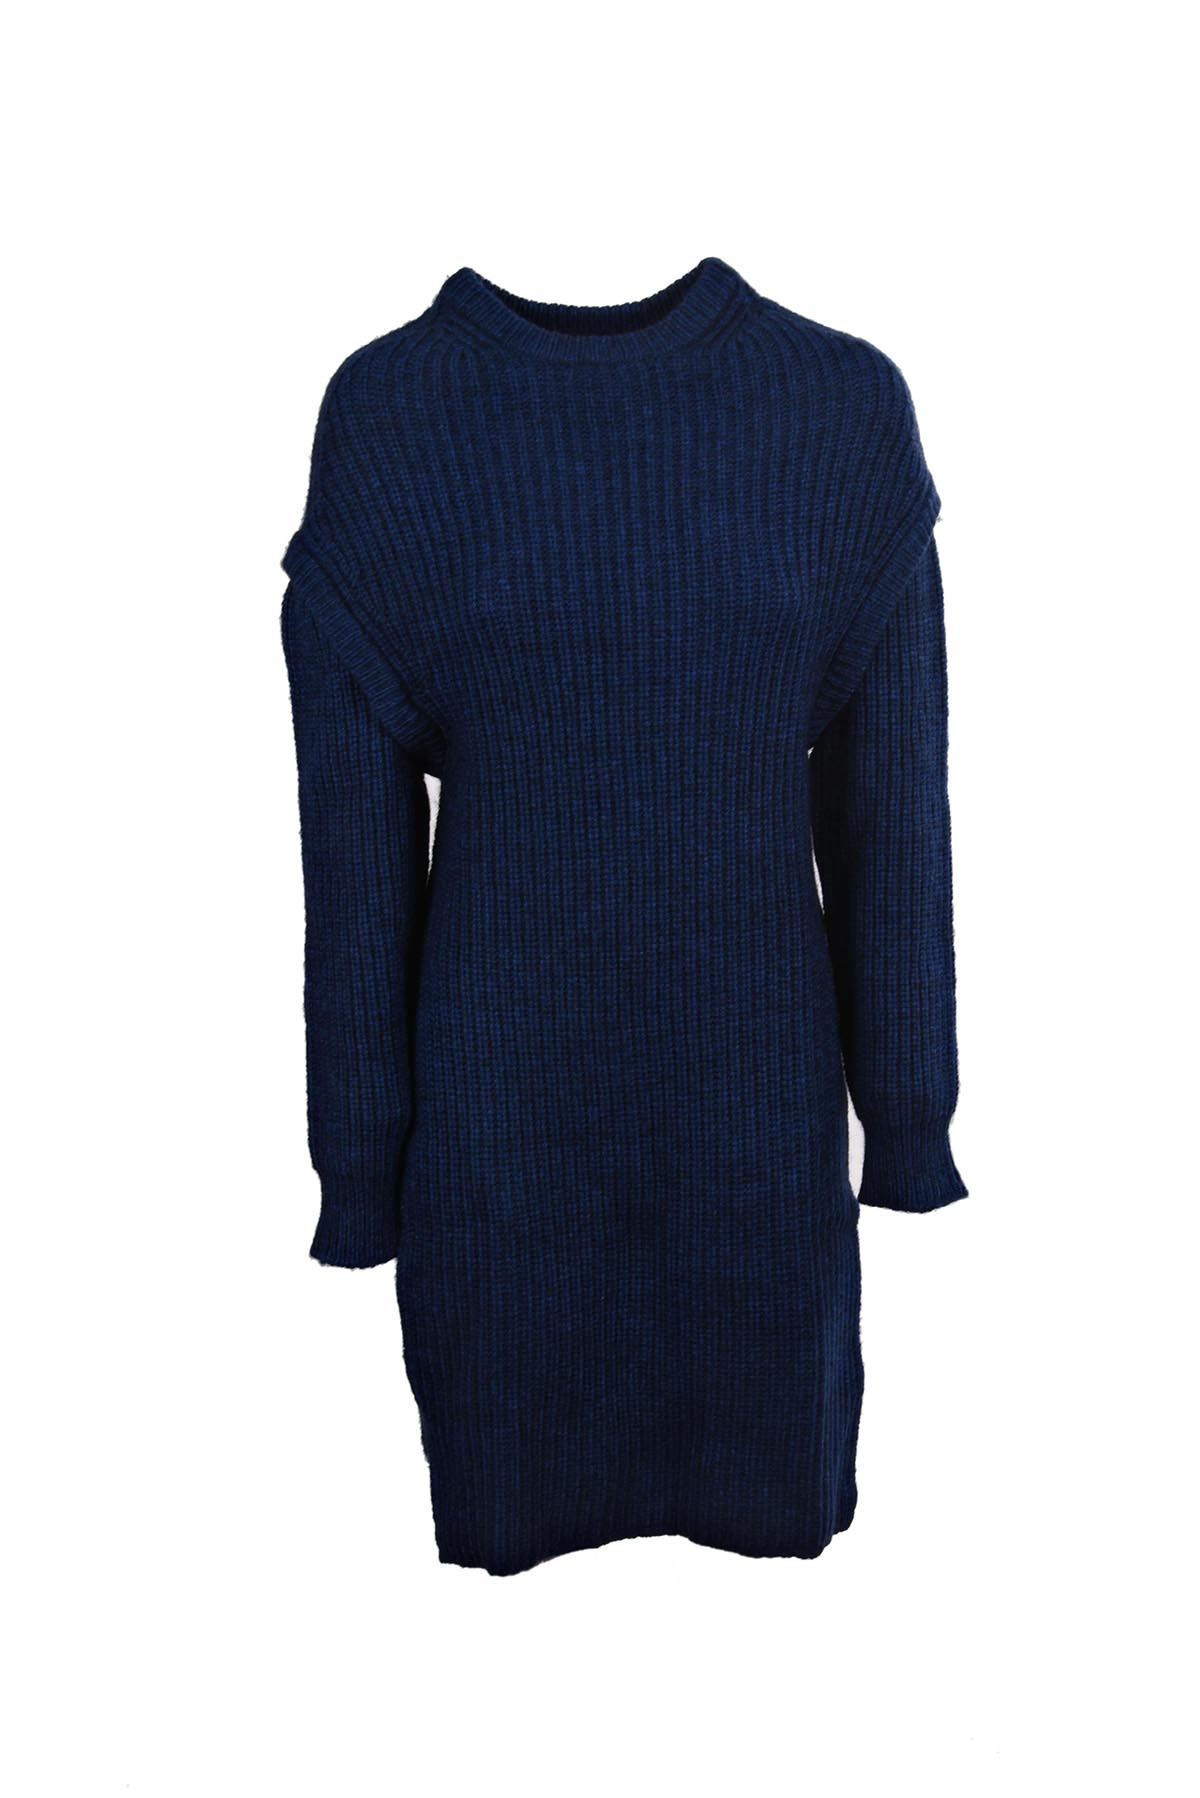 J.W. Anderson Knitted Tunic